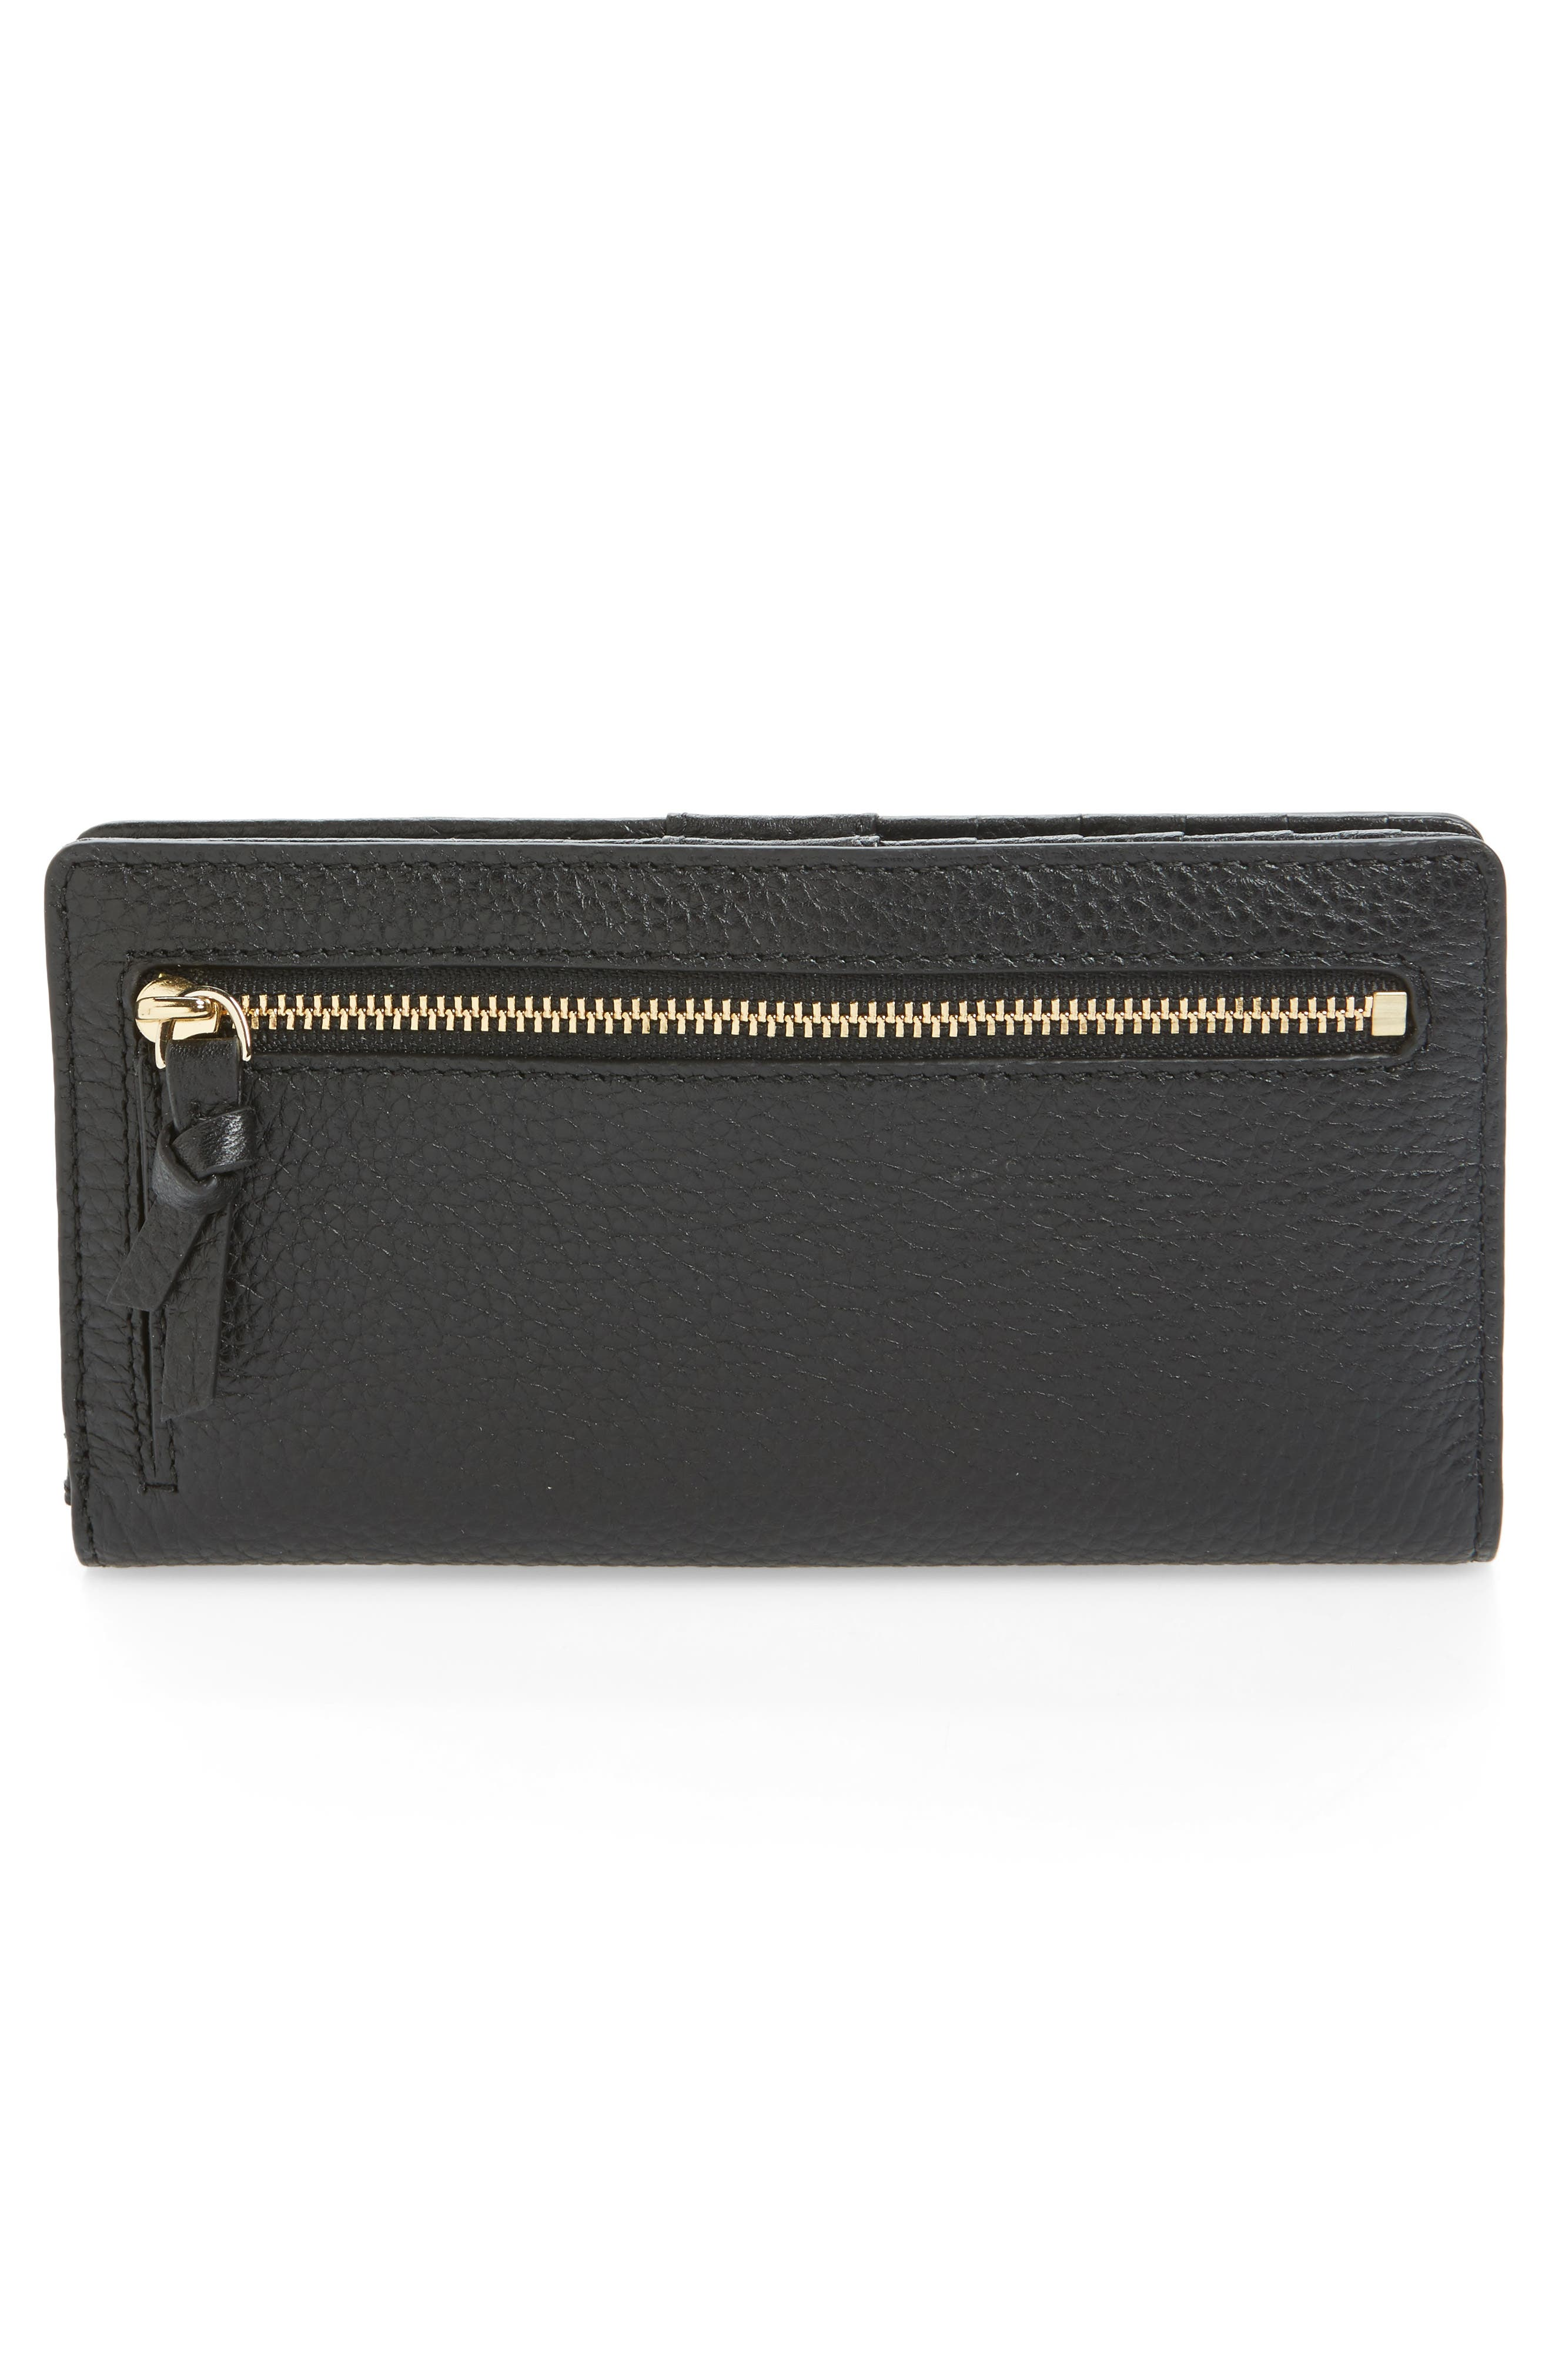 jackson street stacy leather wallet,                             Alternate thumbnail 4, color,                             Black